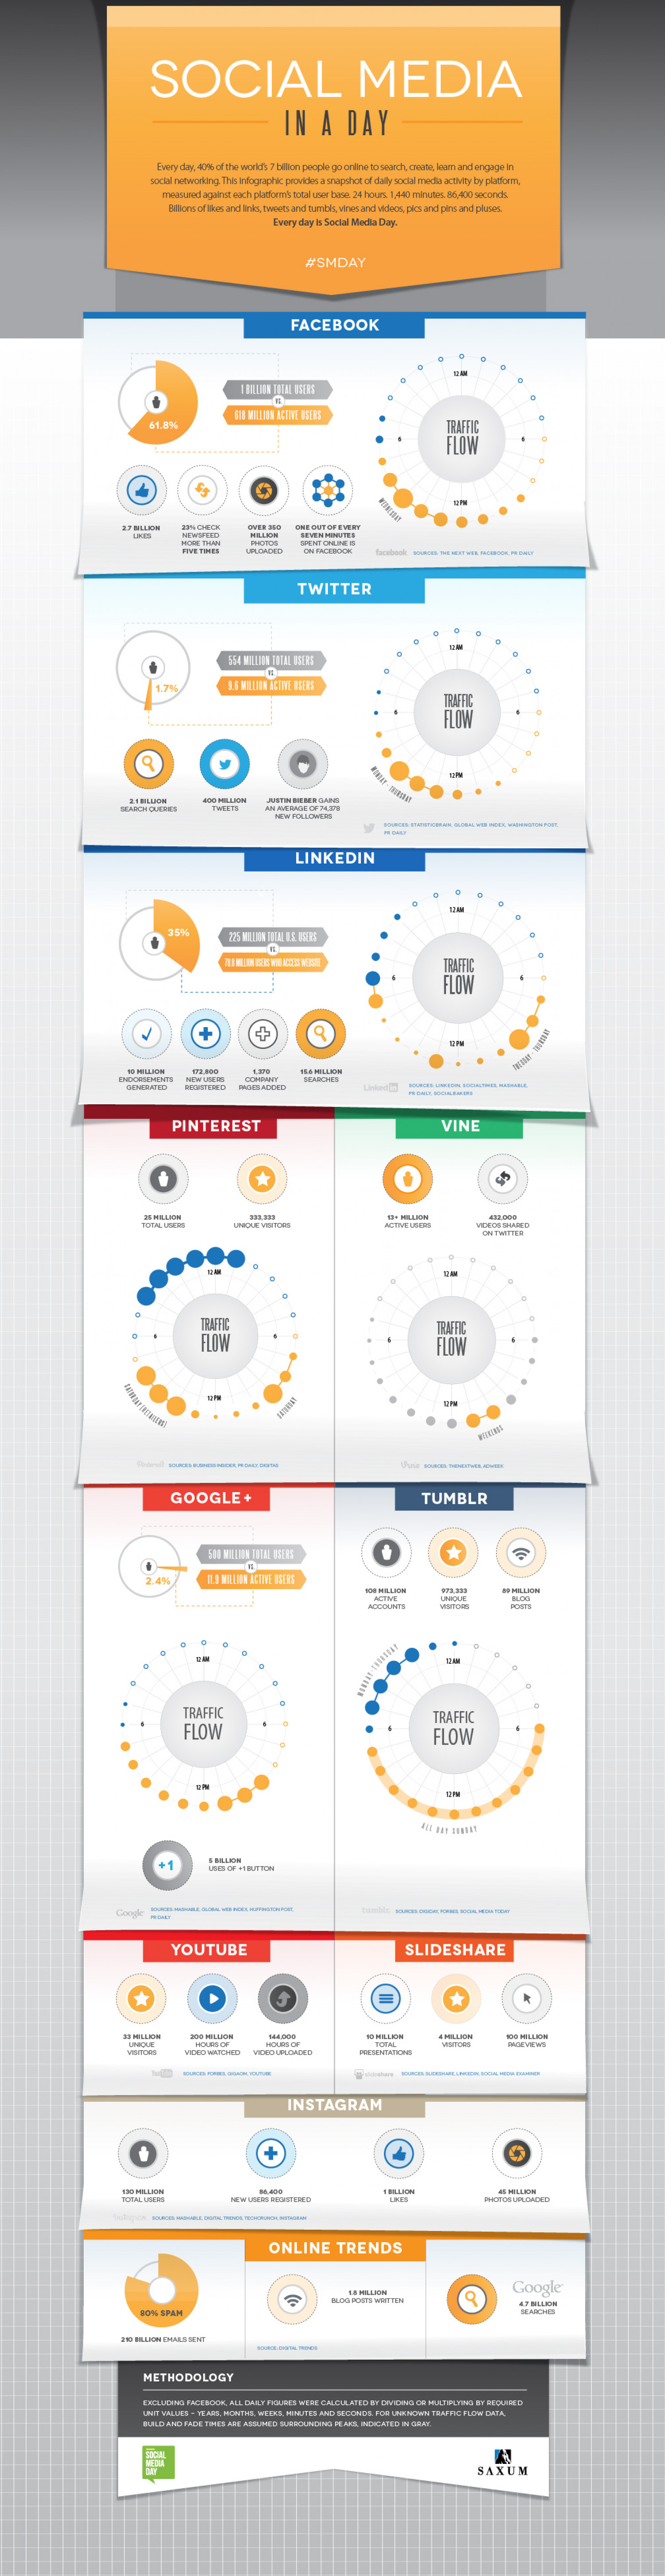 Social Media In A Day Infographic